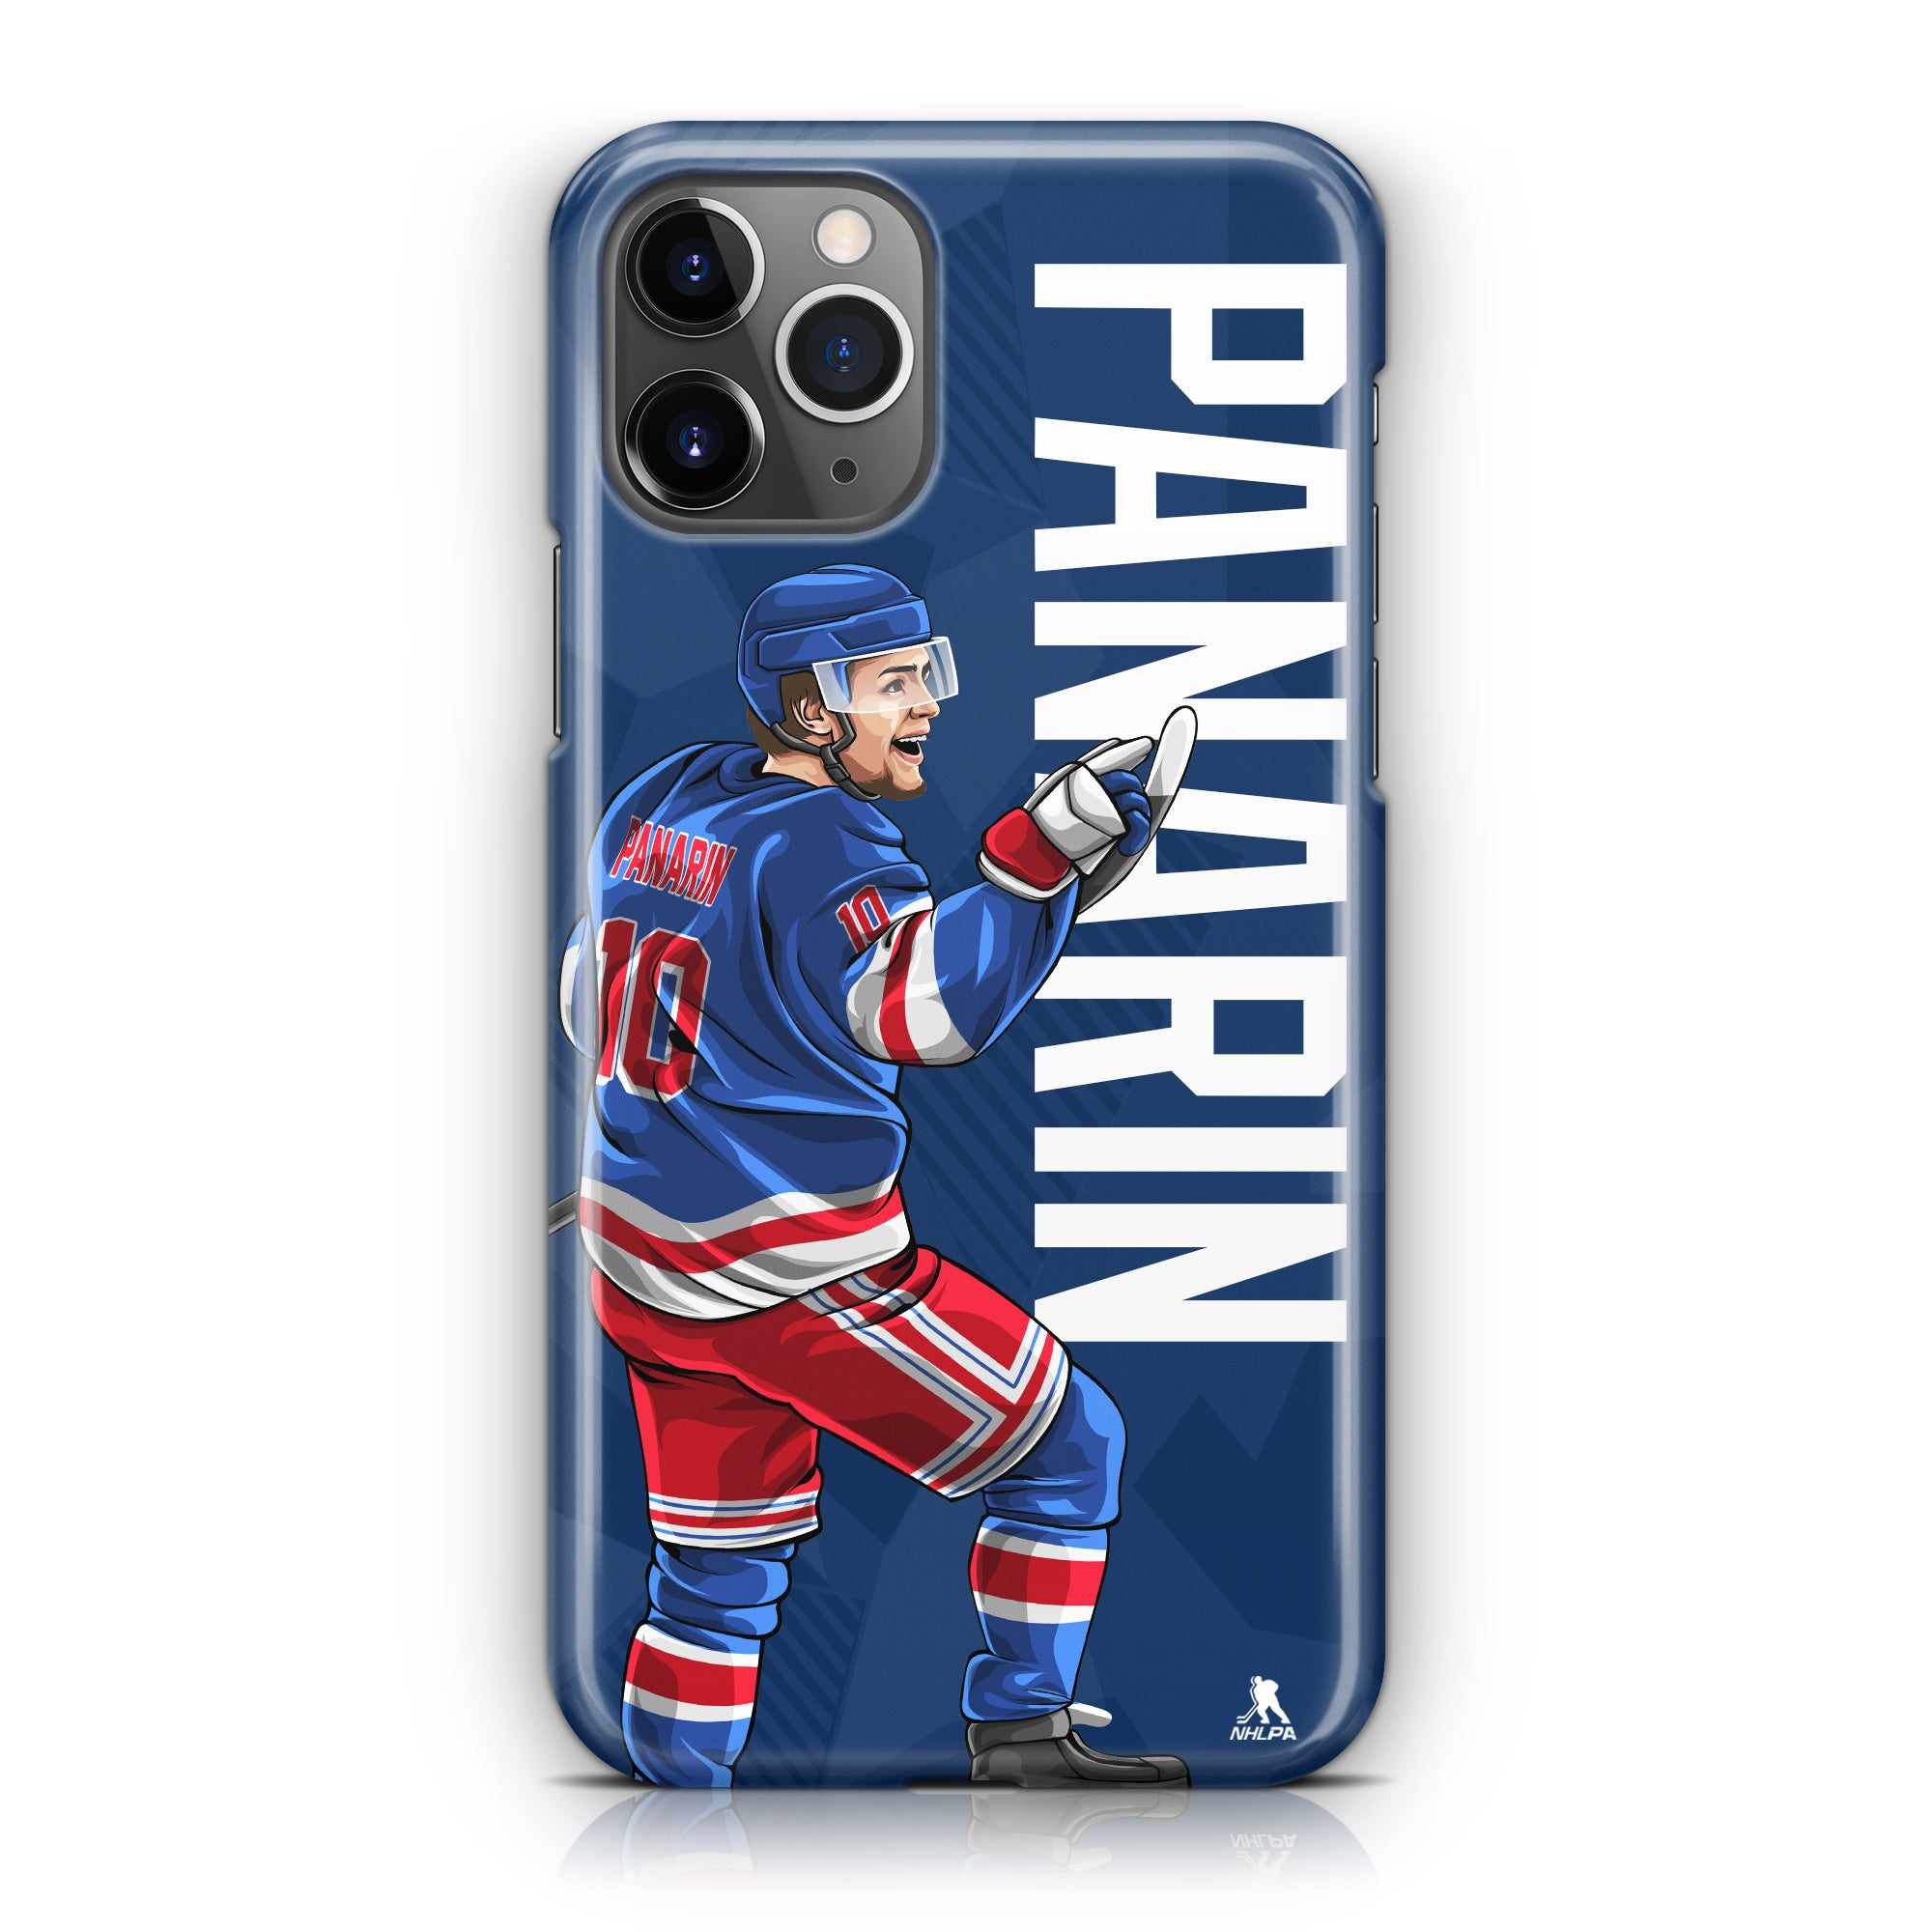 Panarin Star Series 2.0 Case